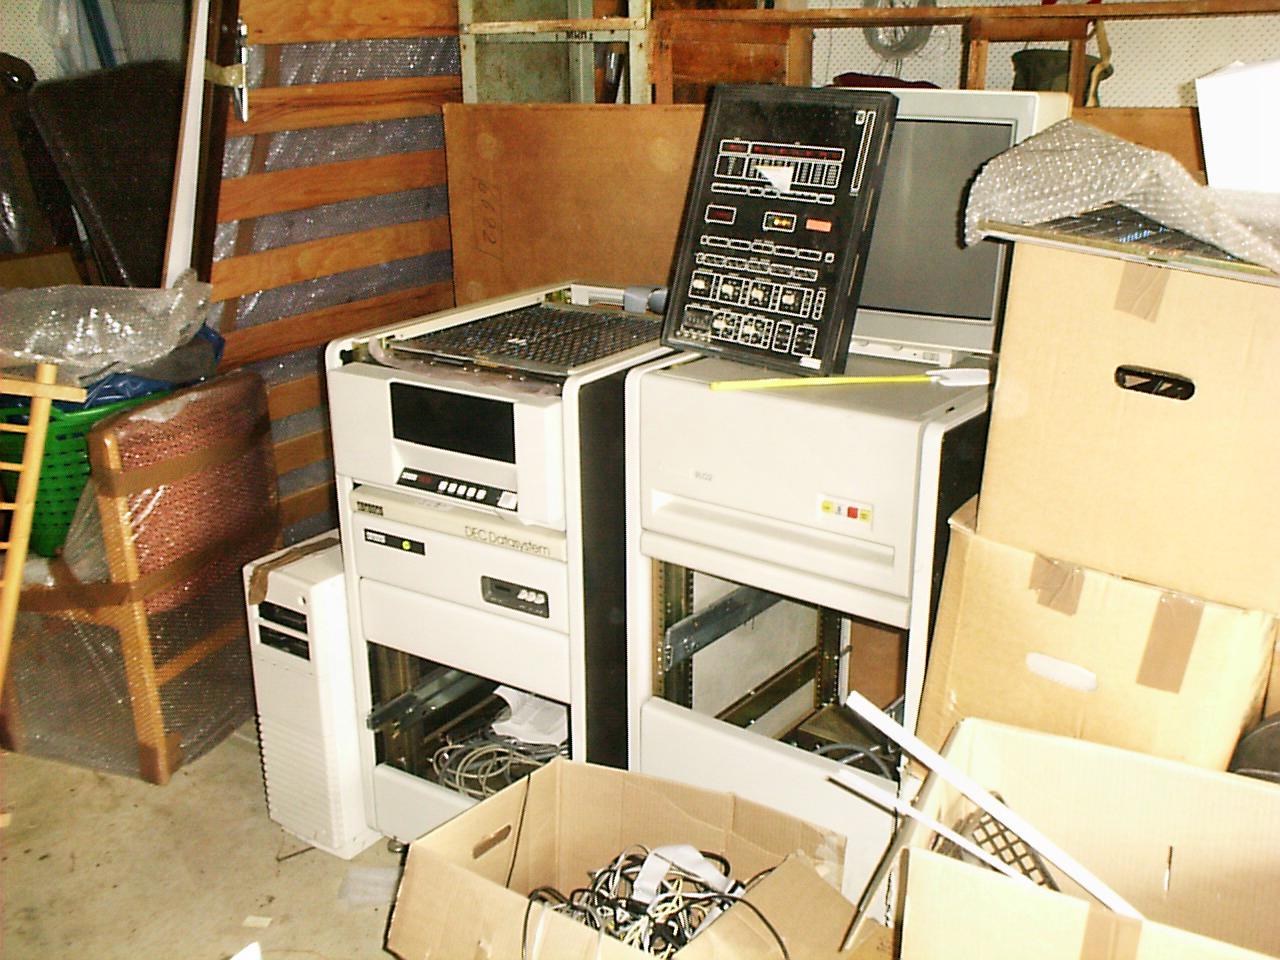 This should be computers-in-shed.jpeg.  Is it missing?